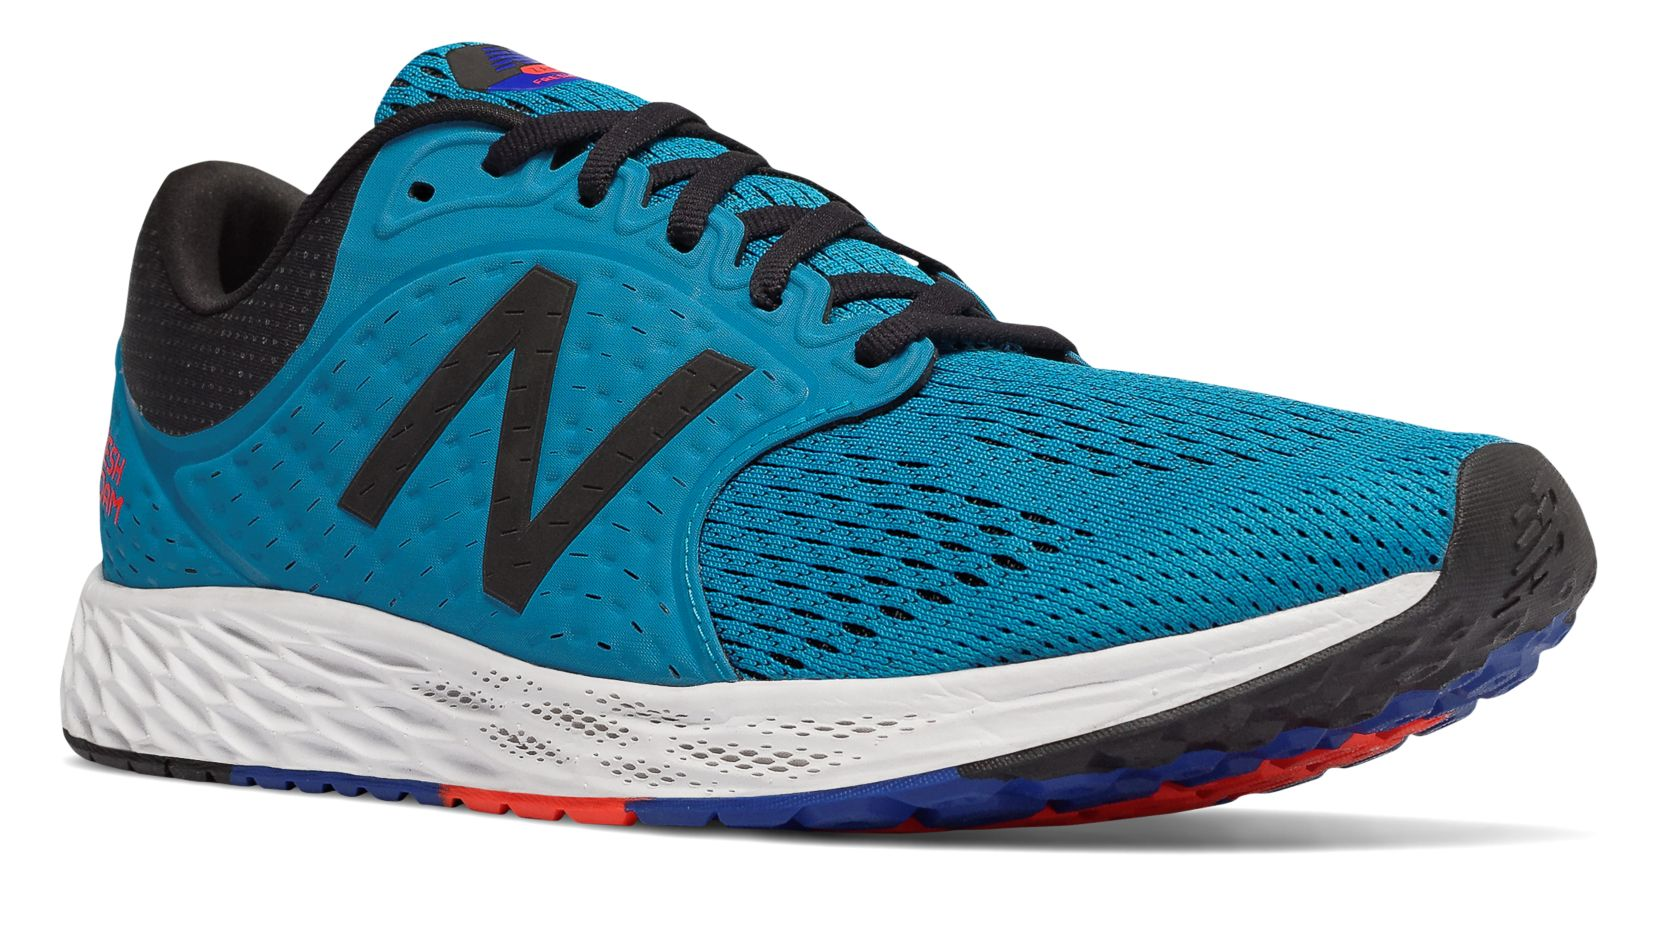 NewBalance Fresh Foam Zante V4 MZANTBY4 Maldives Blue with black size 8.5-10